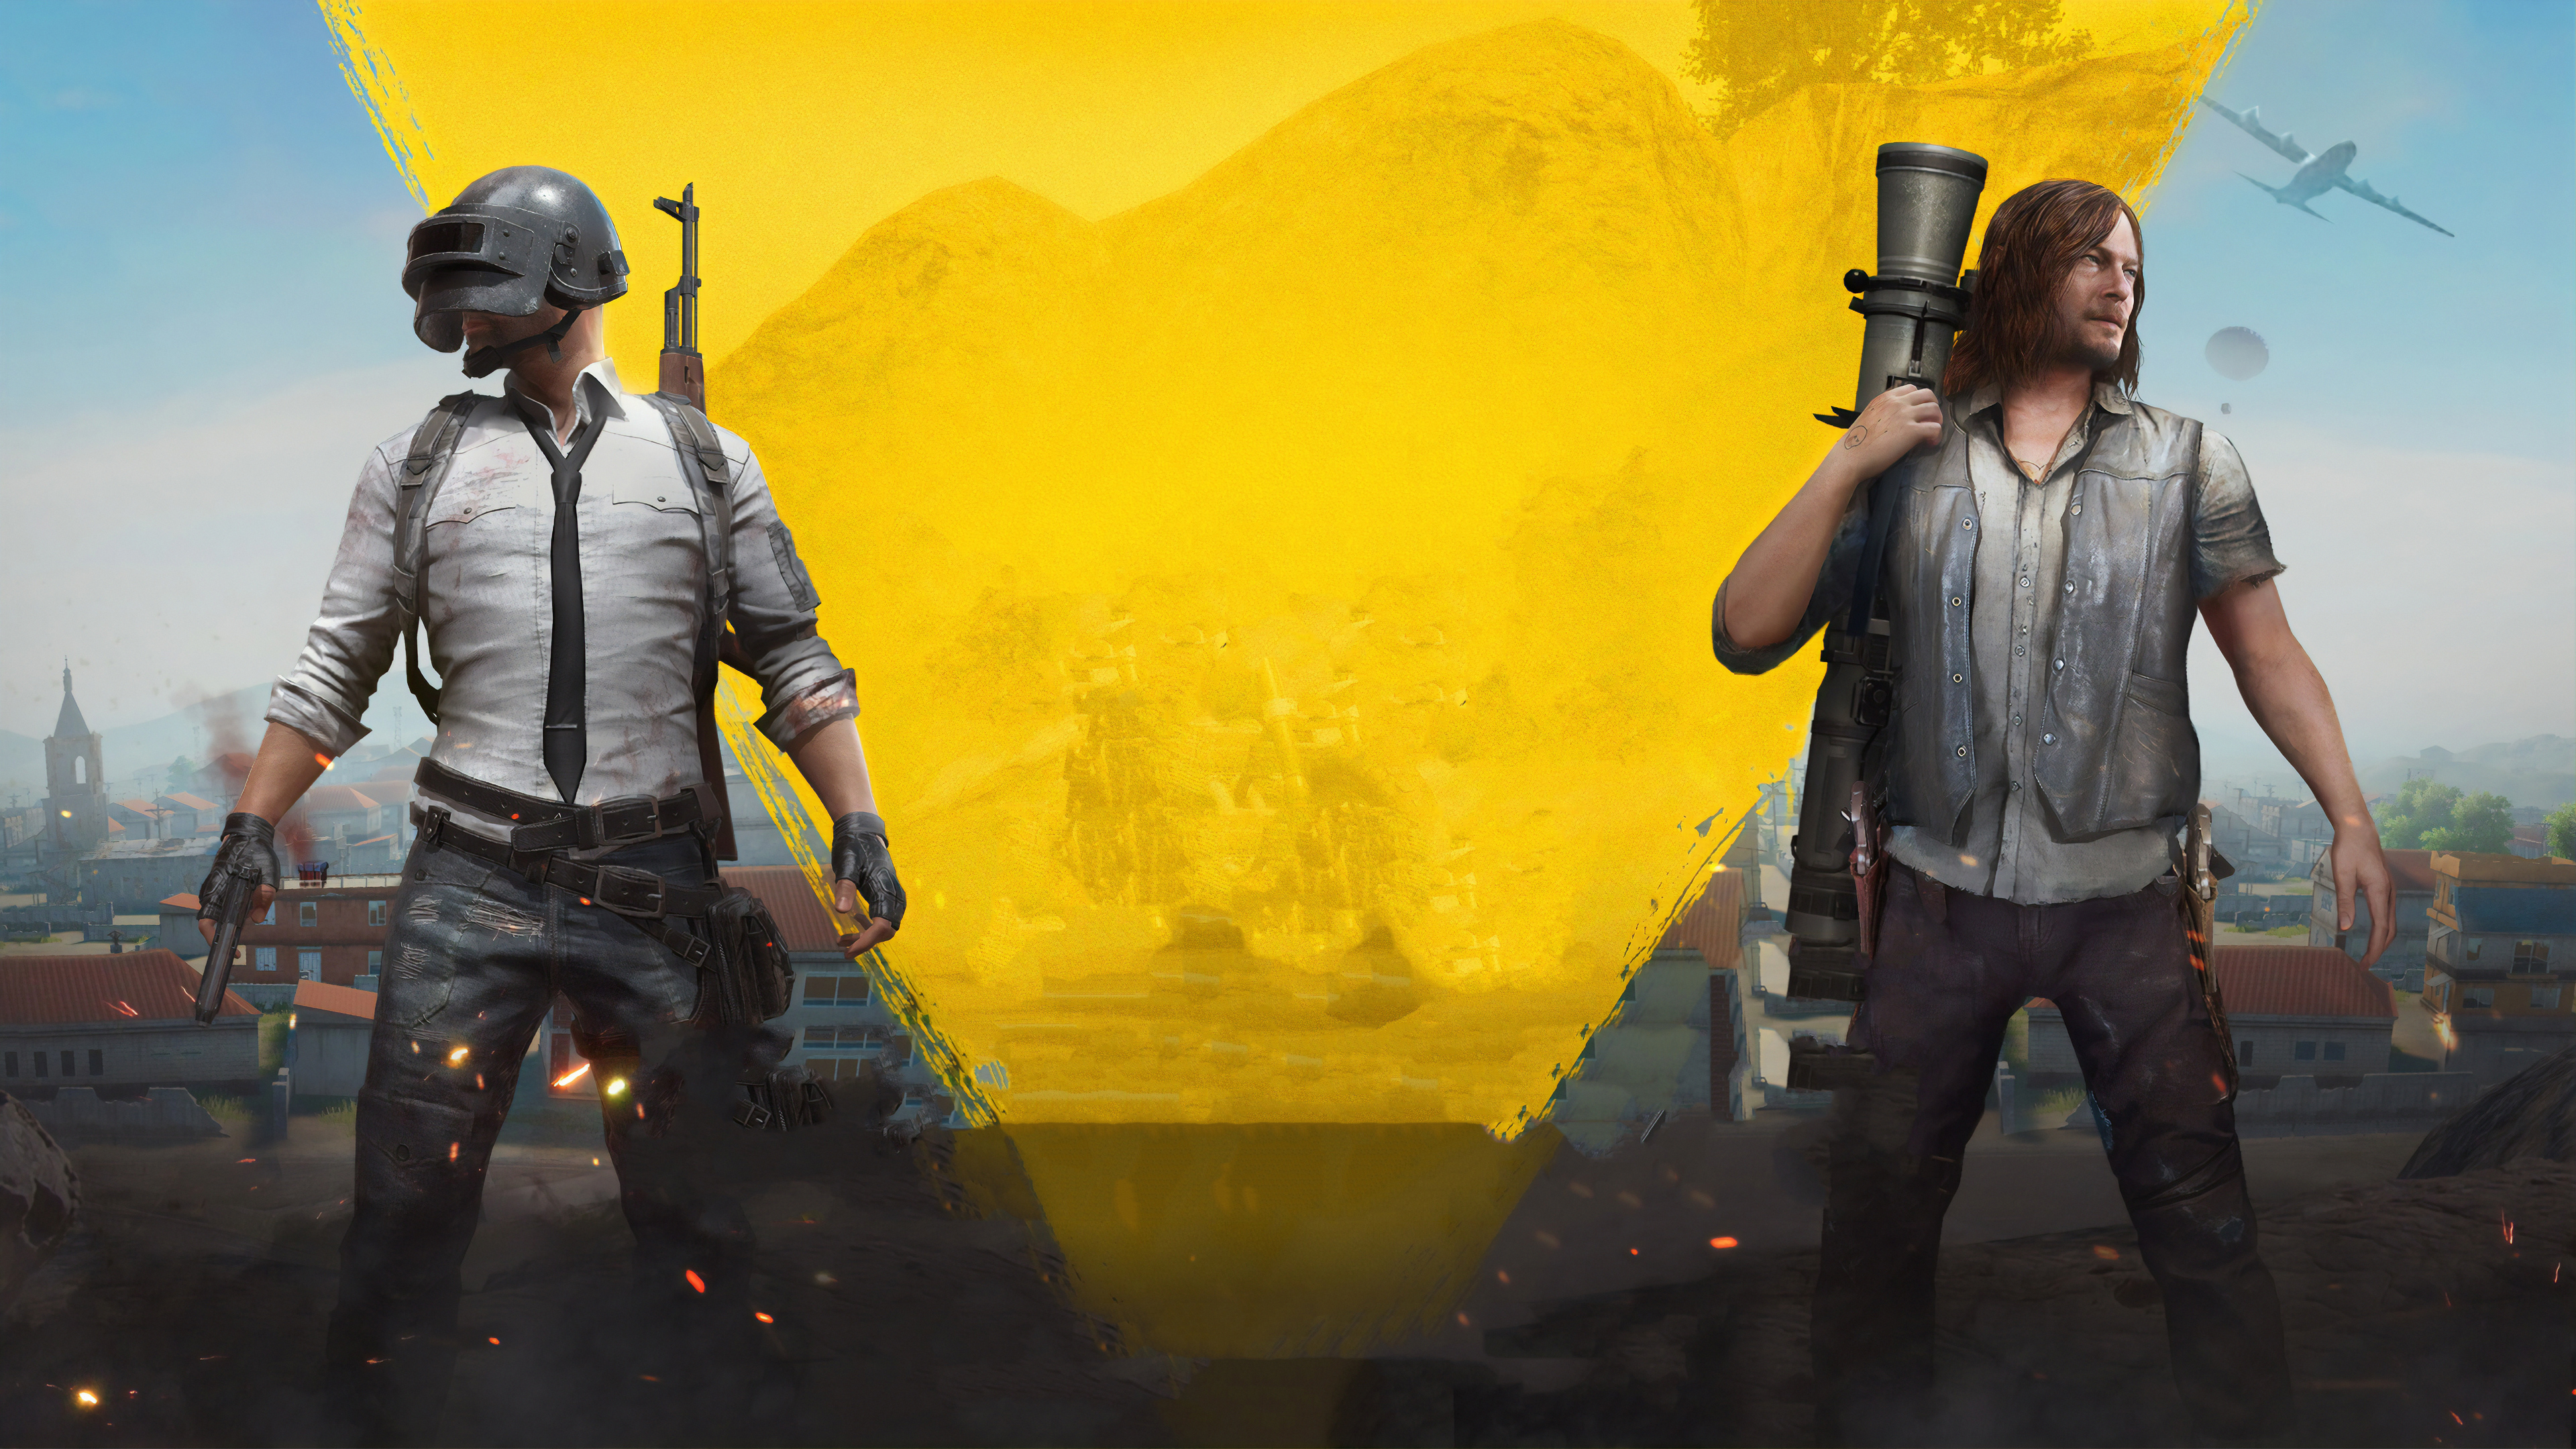 Wallpaper 4k Pubg And The Walking Dead 2018 Games Wallpapers